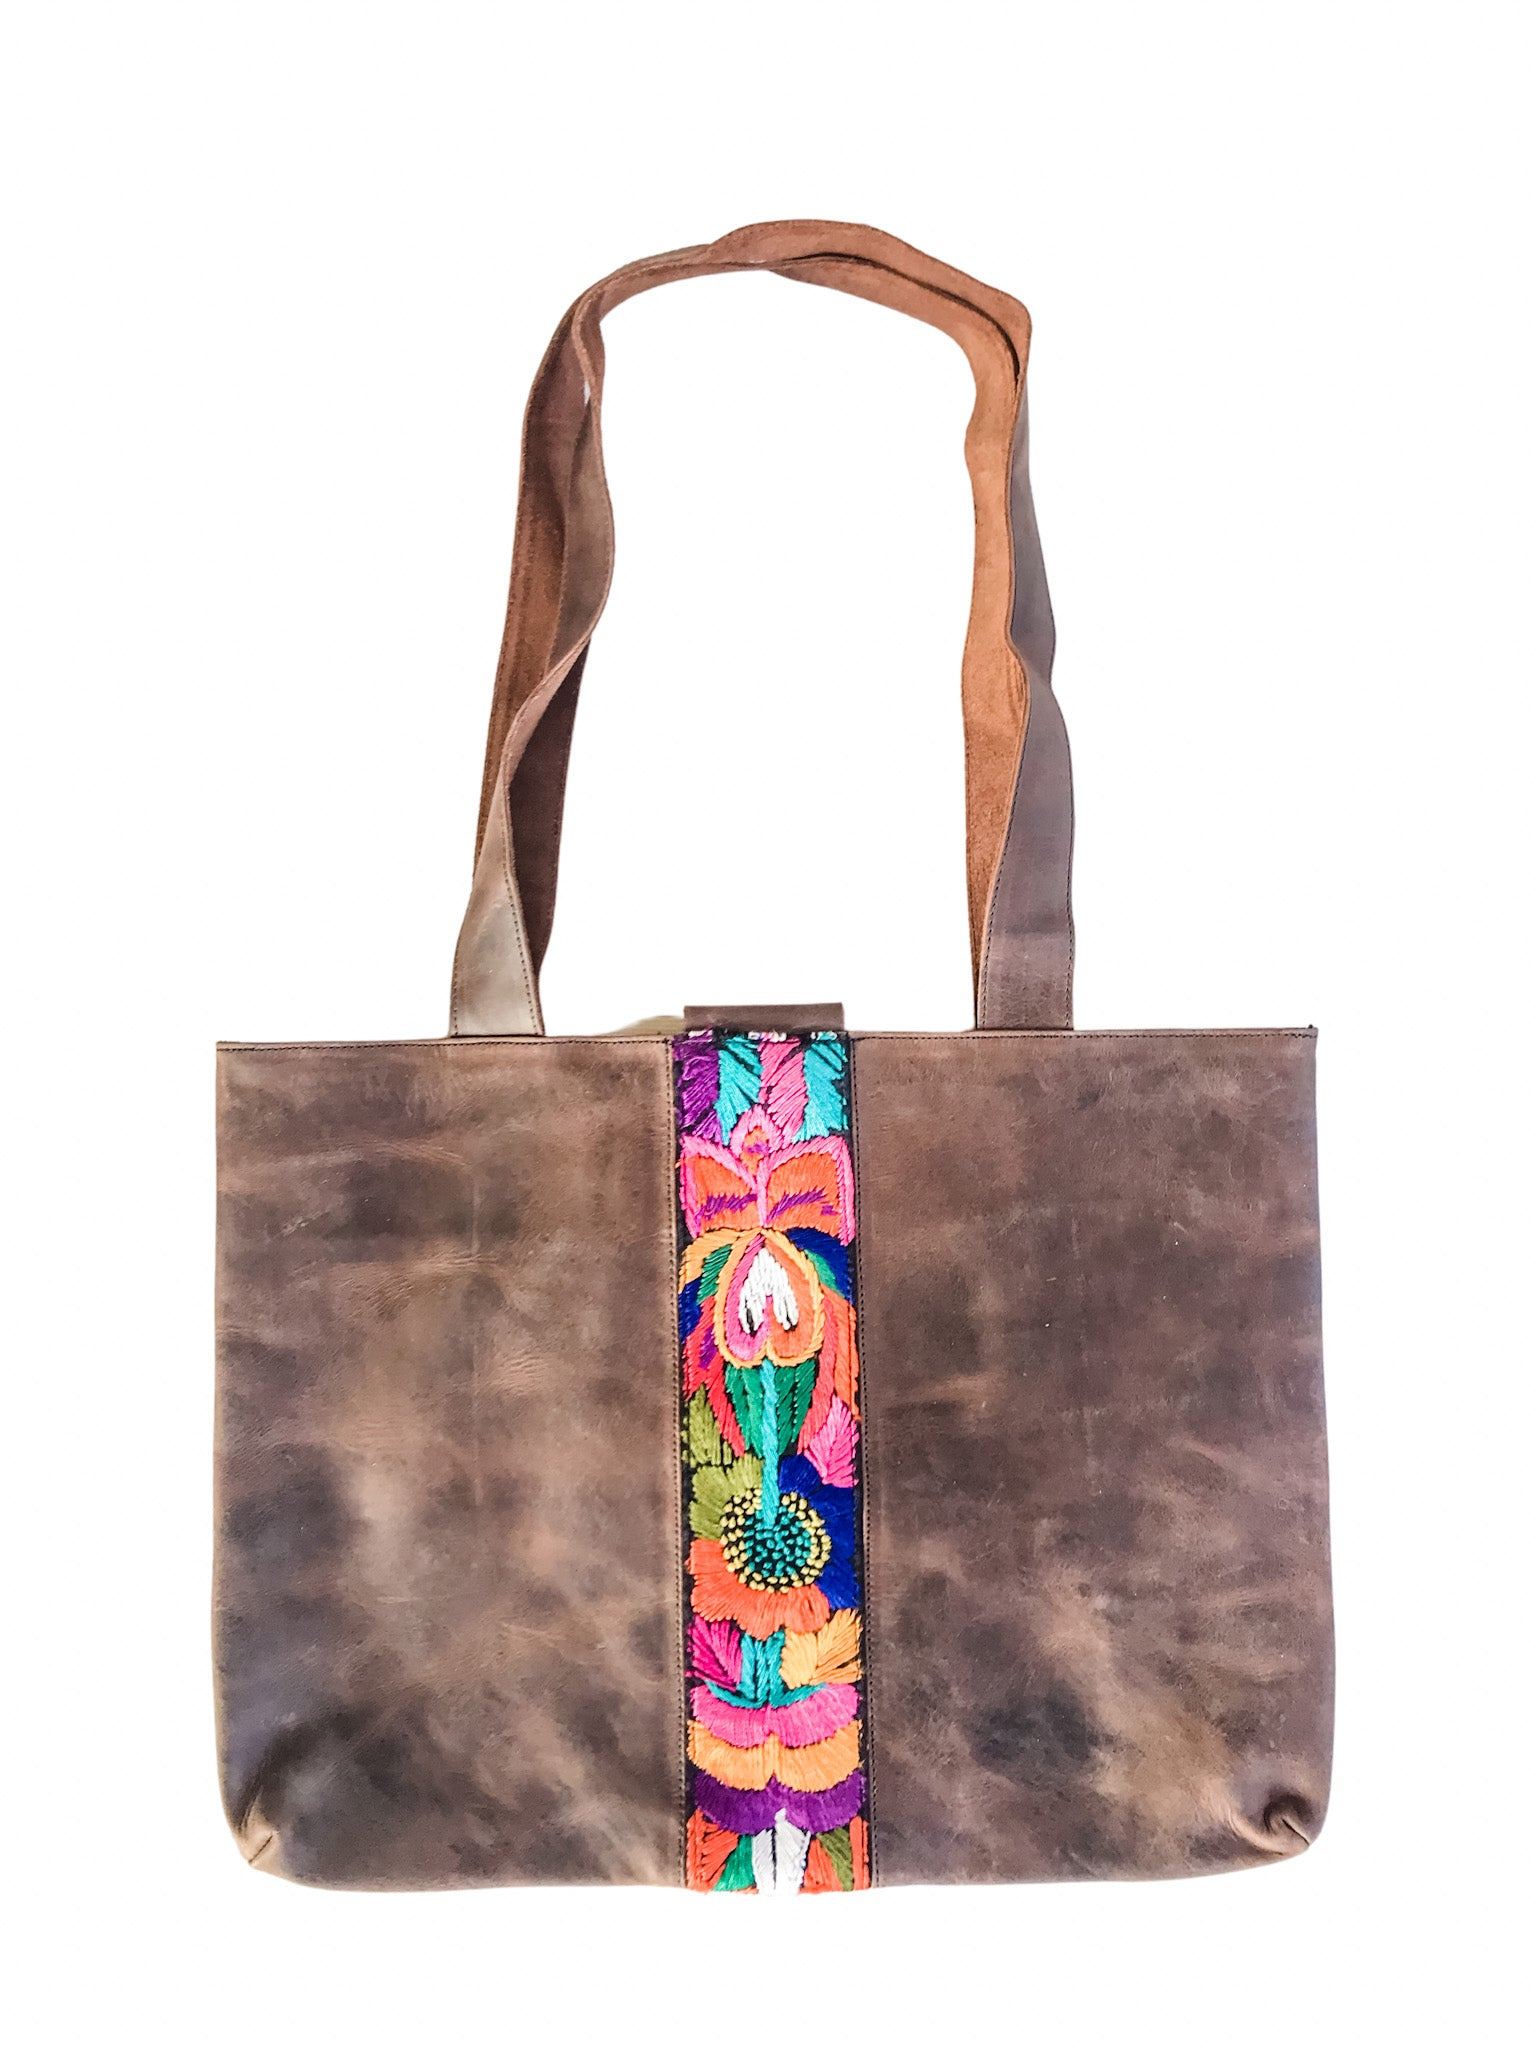 Abril Guatemalan Leather Tote Bag - 10704